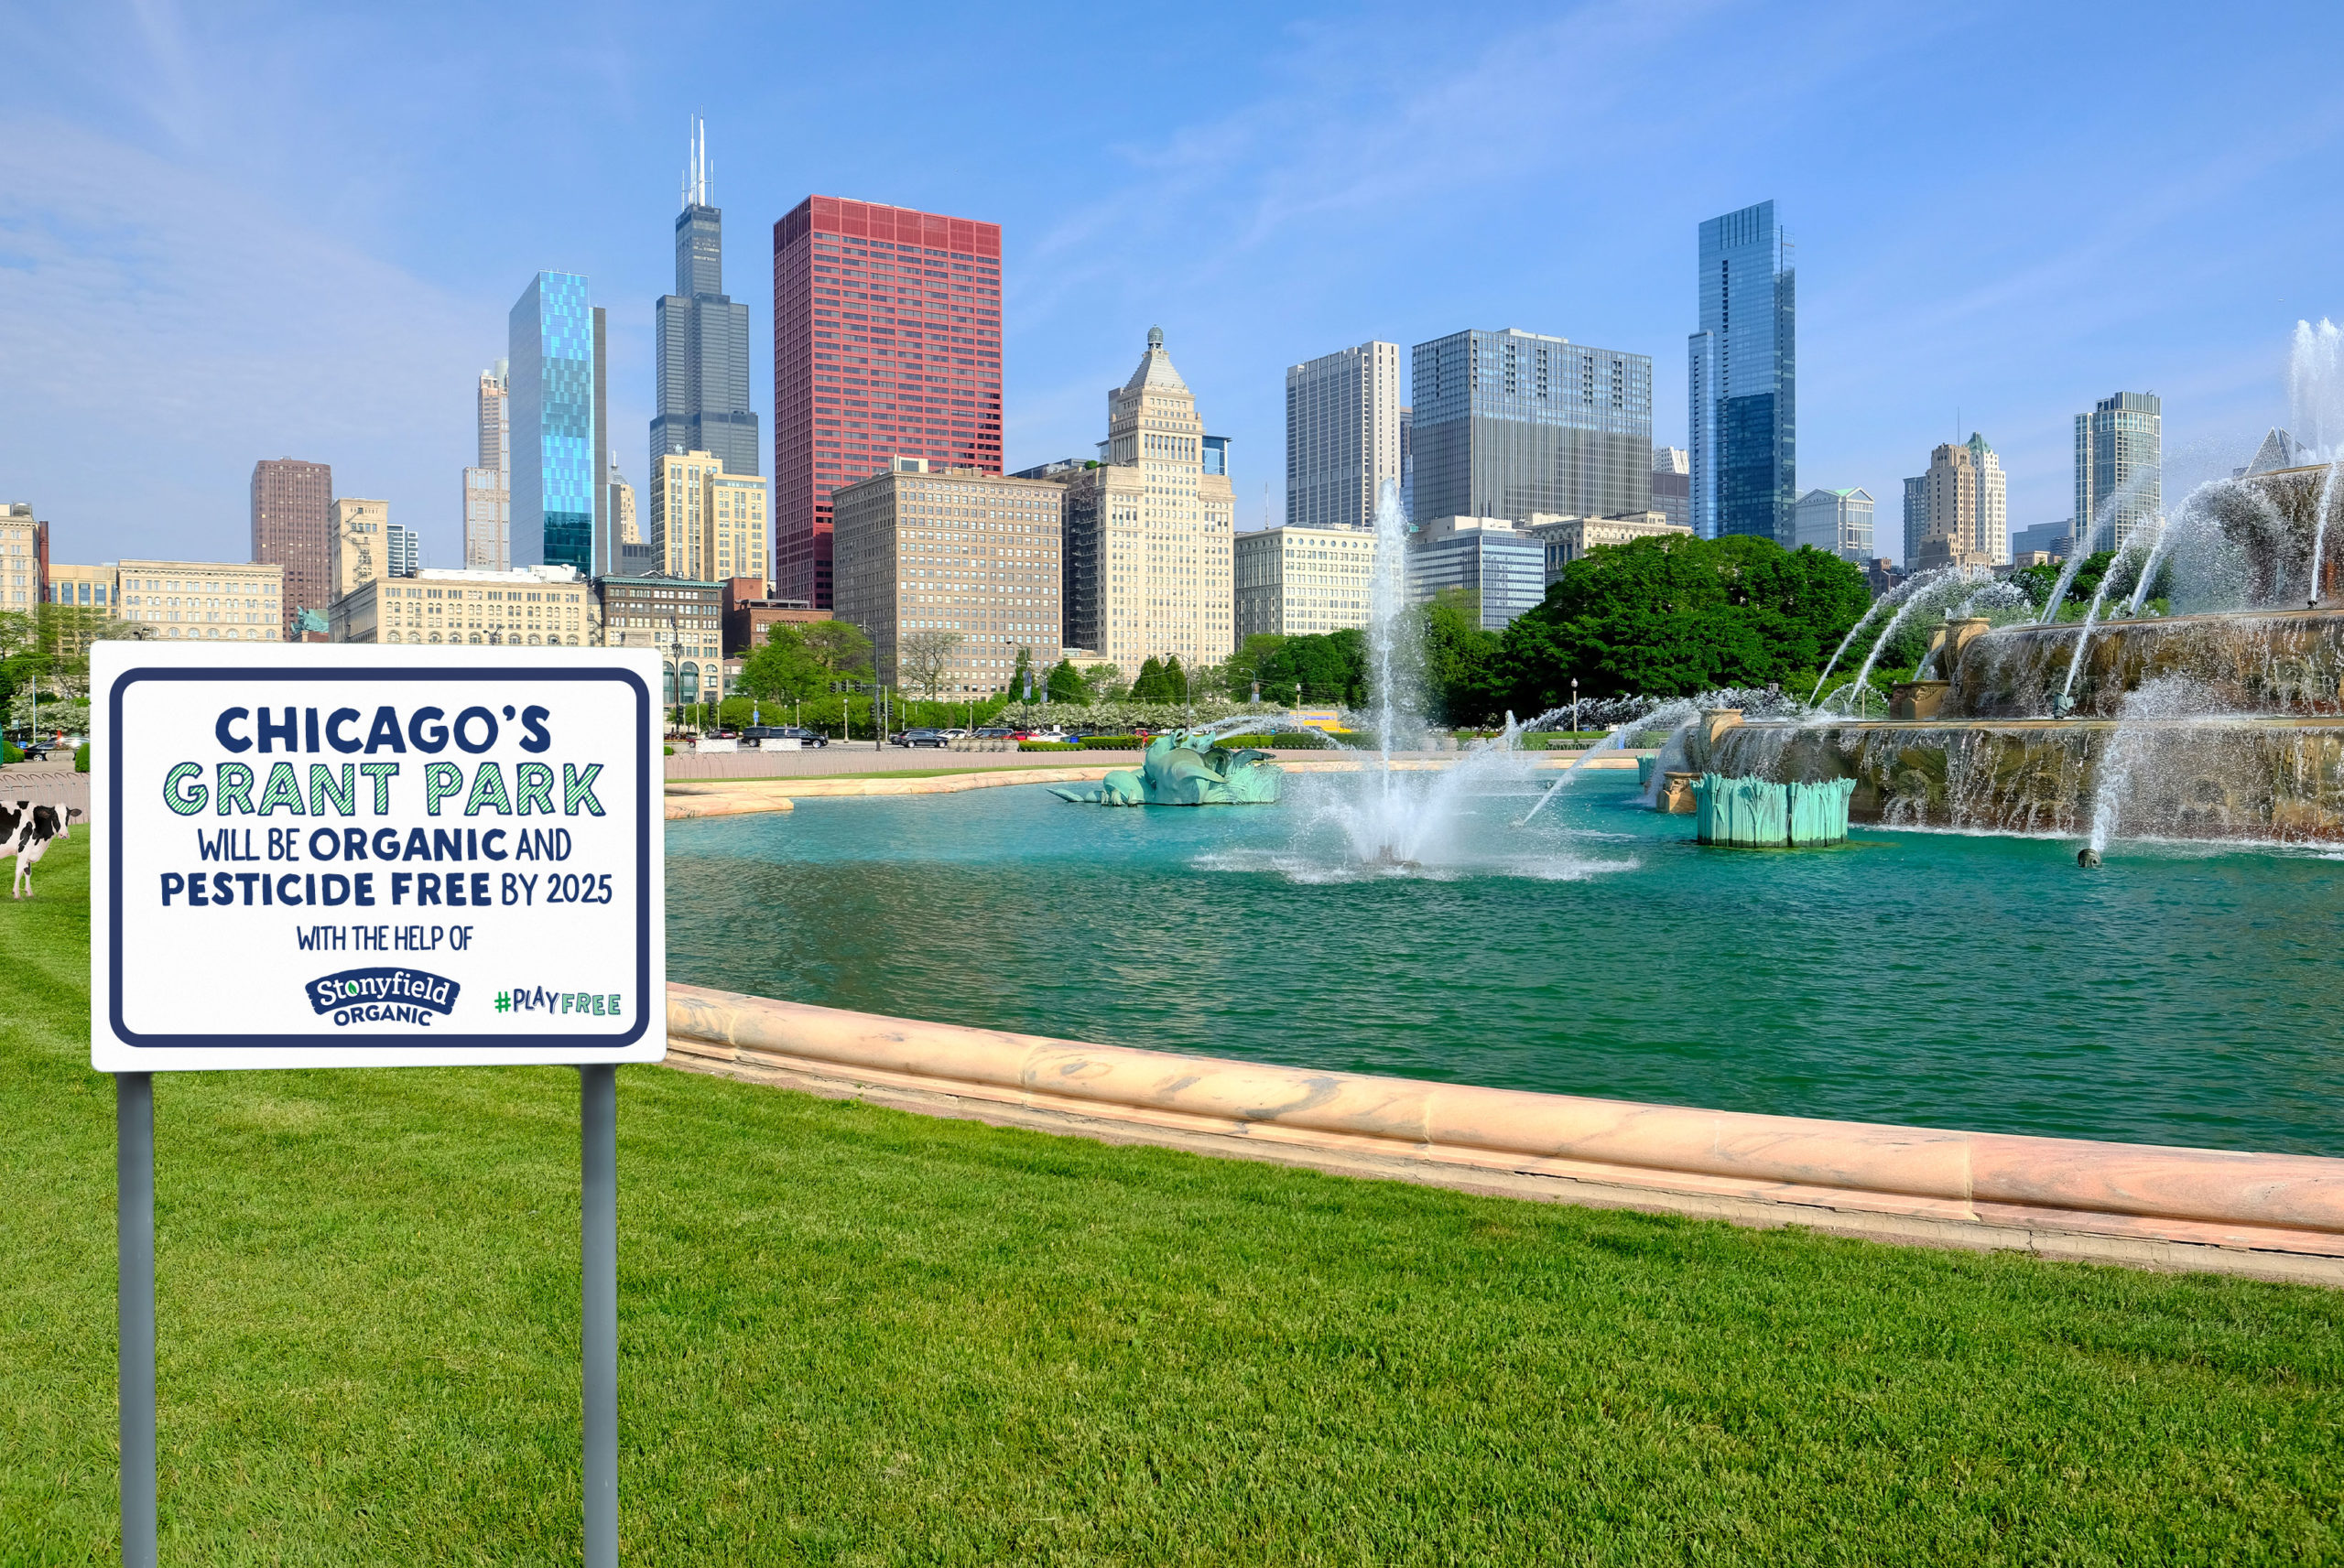 A sign in Chicago's Grant Park that commits to organic conversion